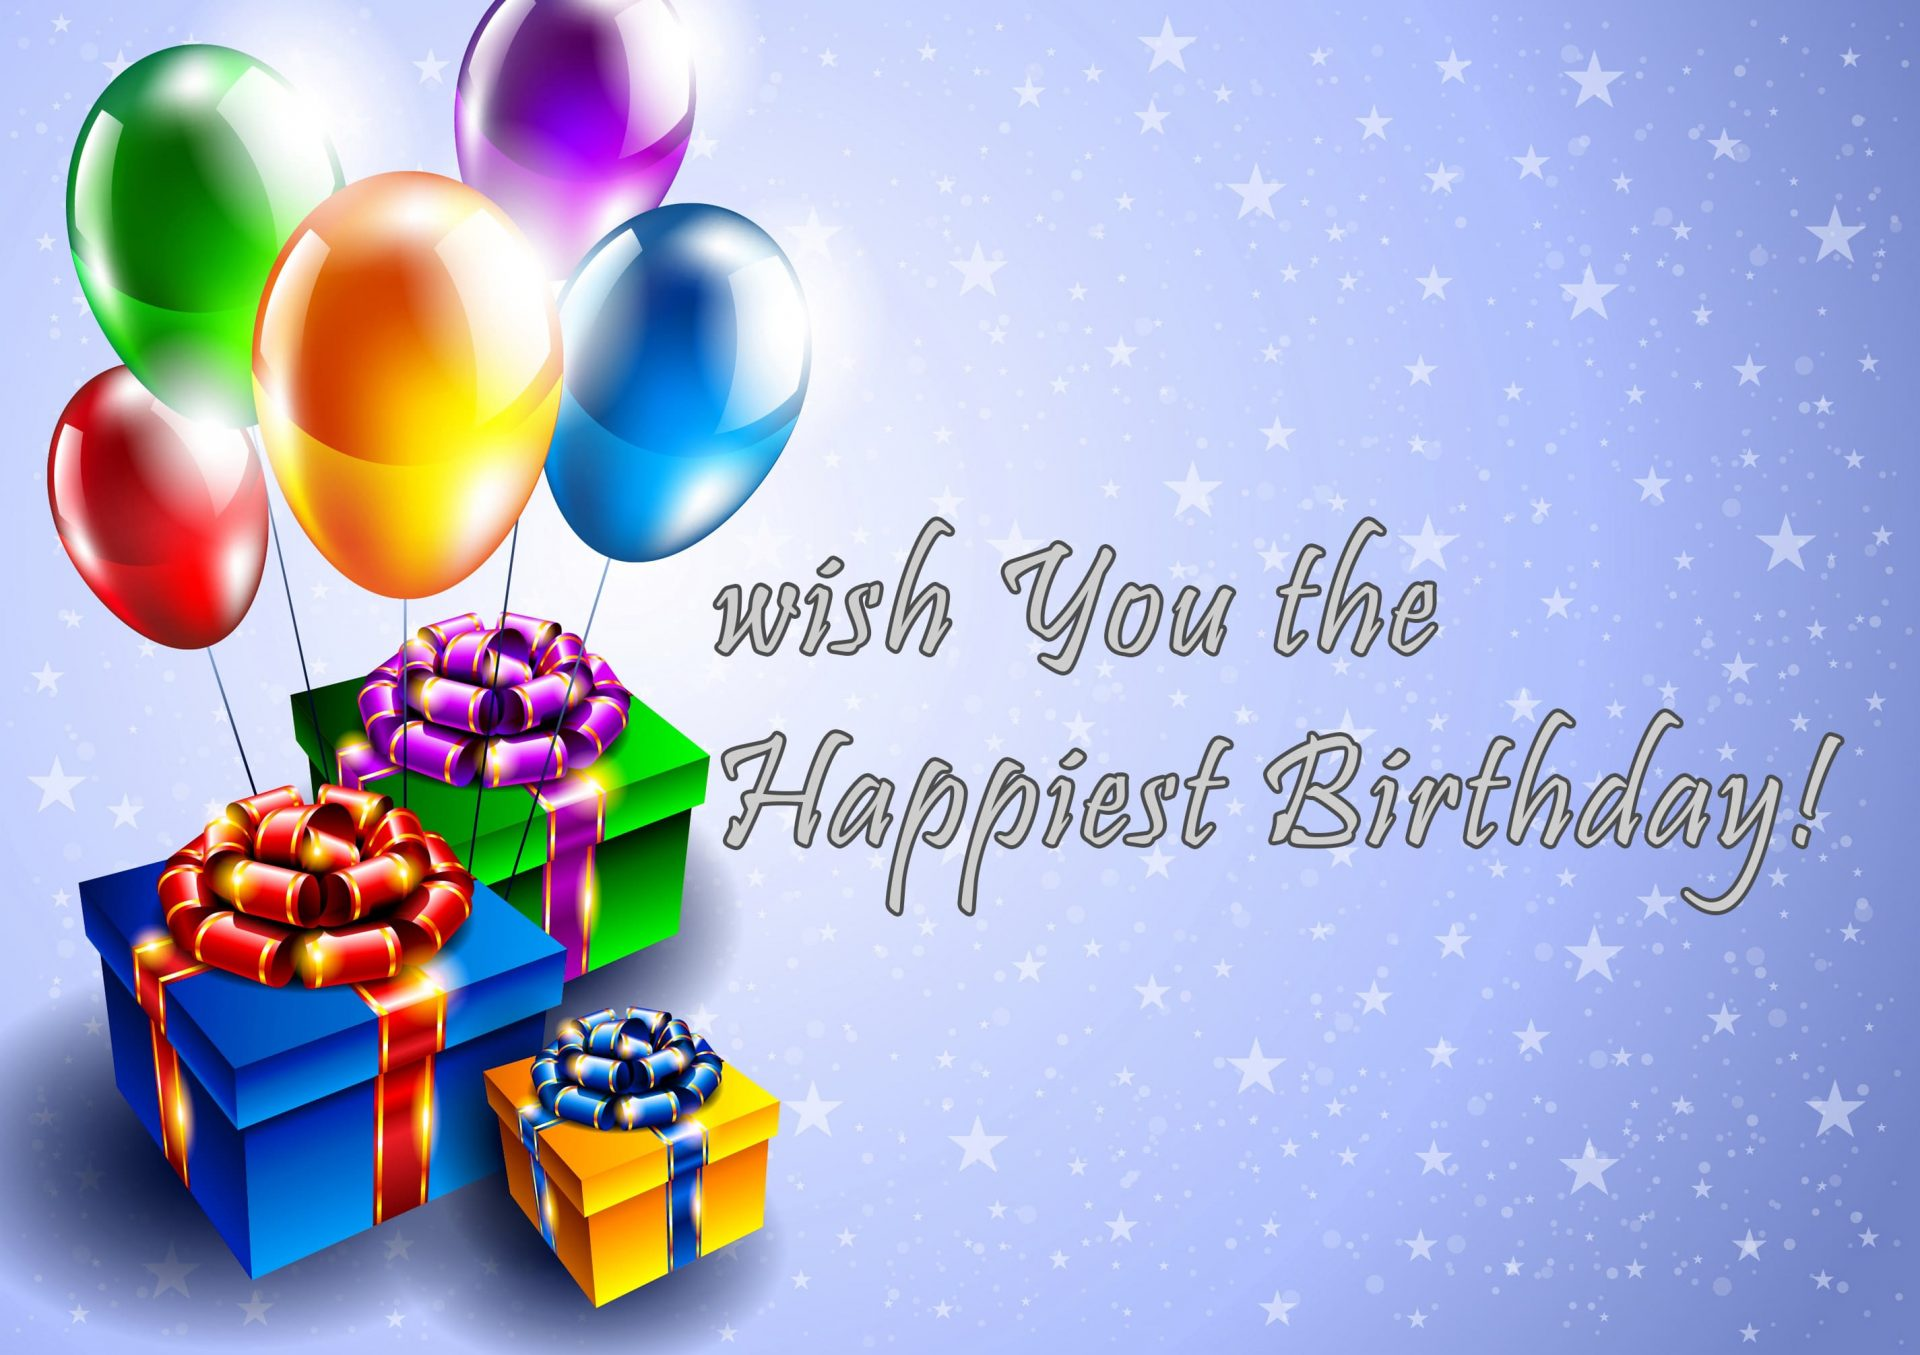 Happy Birthday Wishes, Sayings, Images